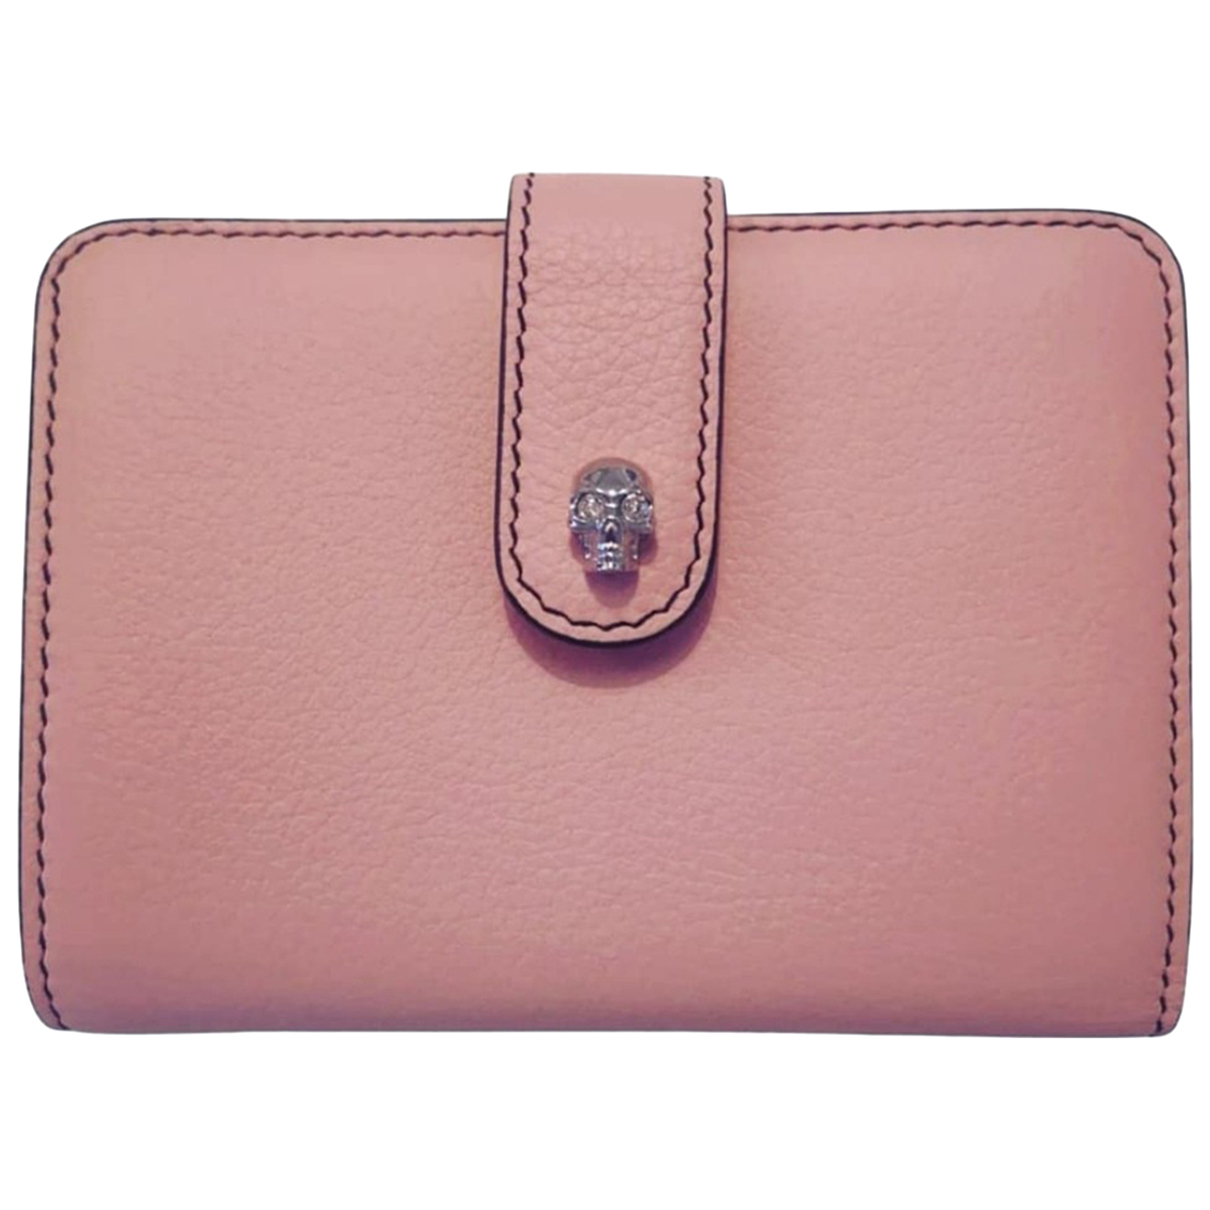 Alexander Mcqueen N Pink Leather Purses, wallet & cases for Women N